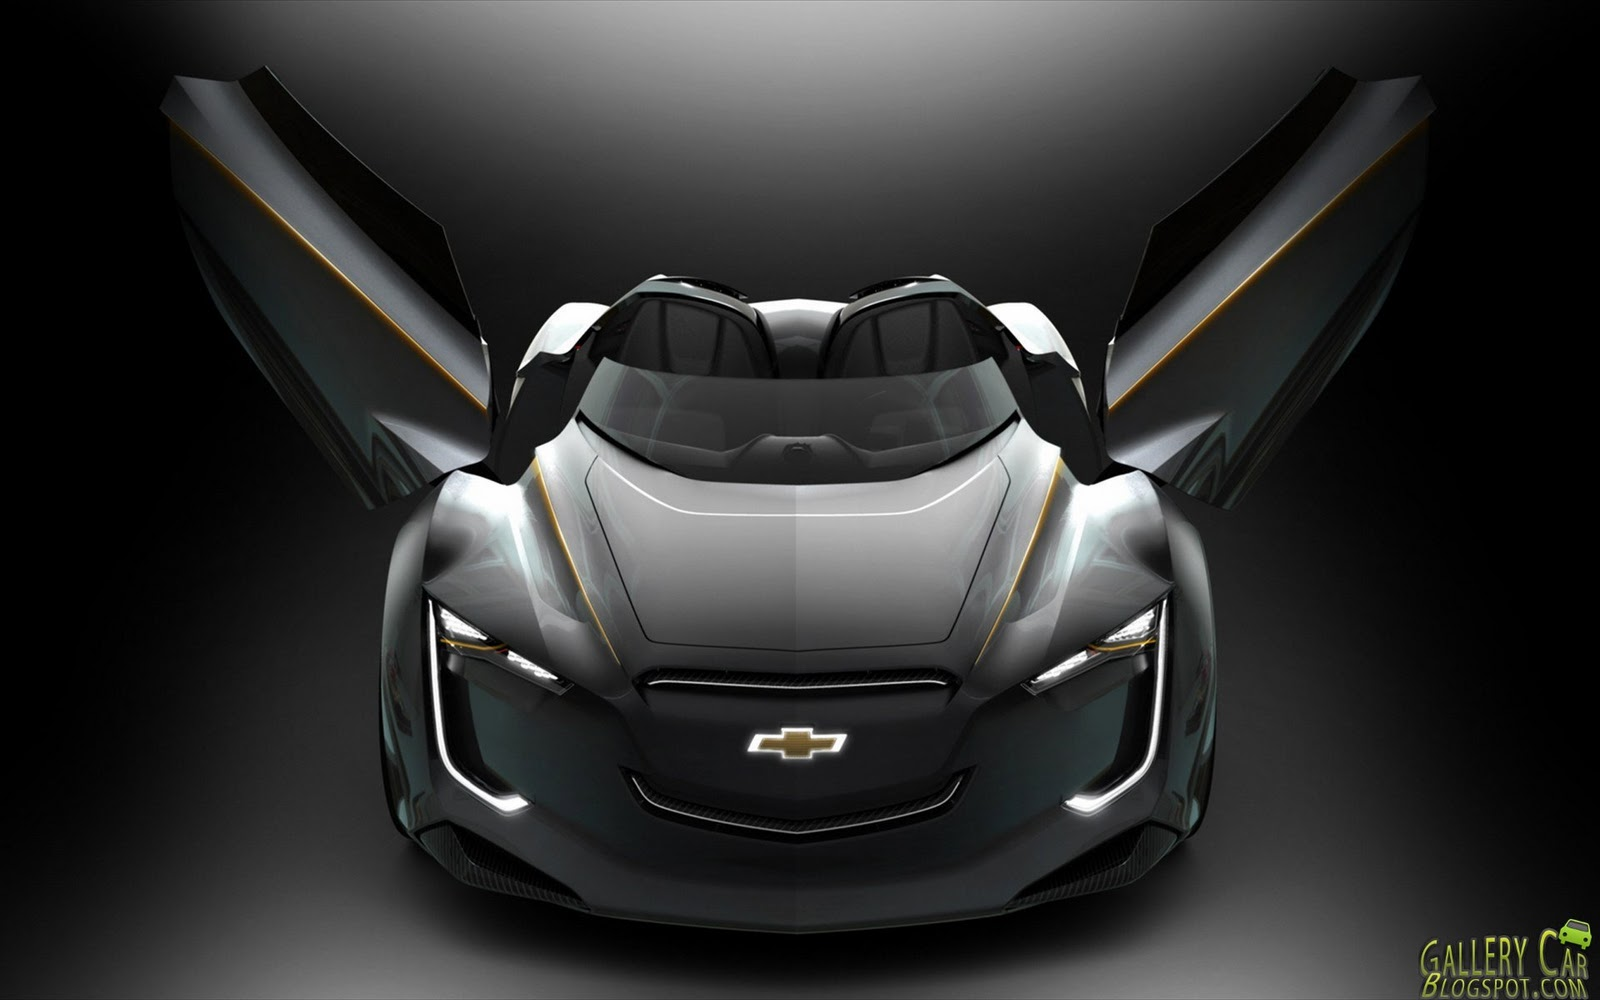 Chevrolet mi ray roadster concept car wallpapers and images - chevrolet mi ray roadster concept car wallpapers